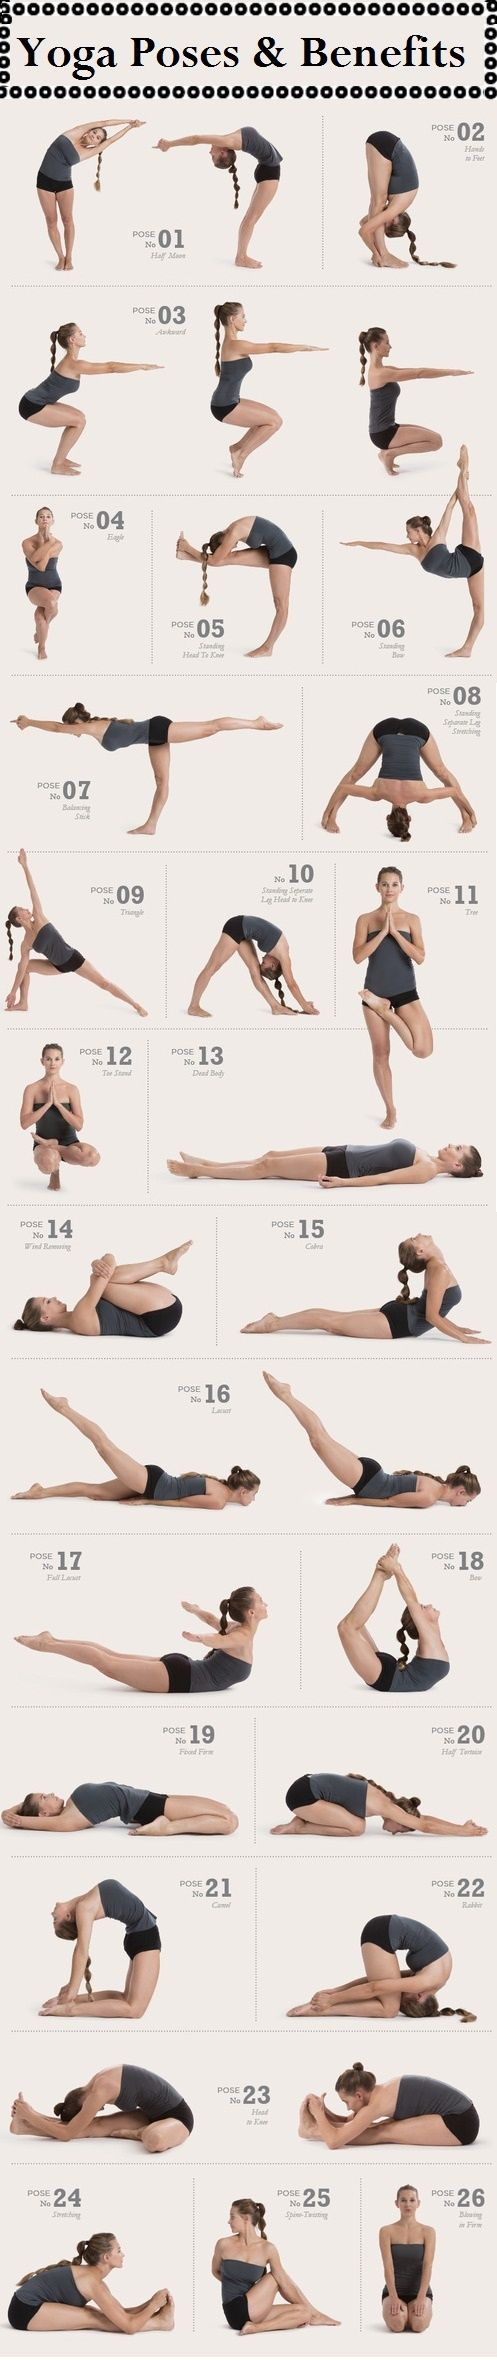 These are the poses used for bikram yoga